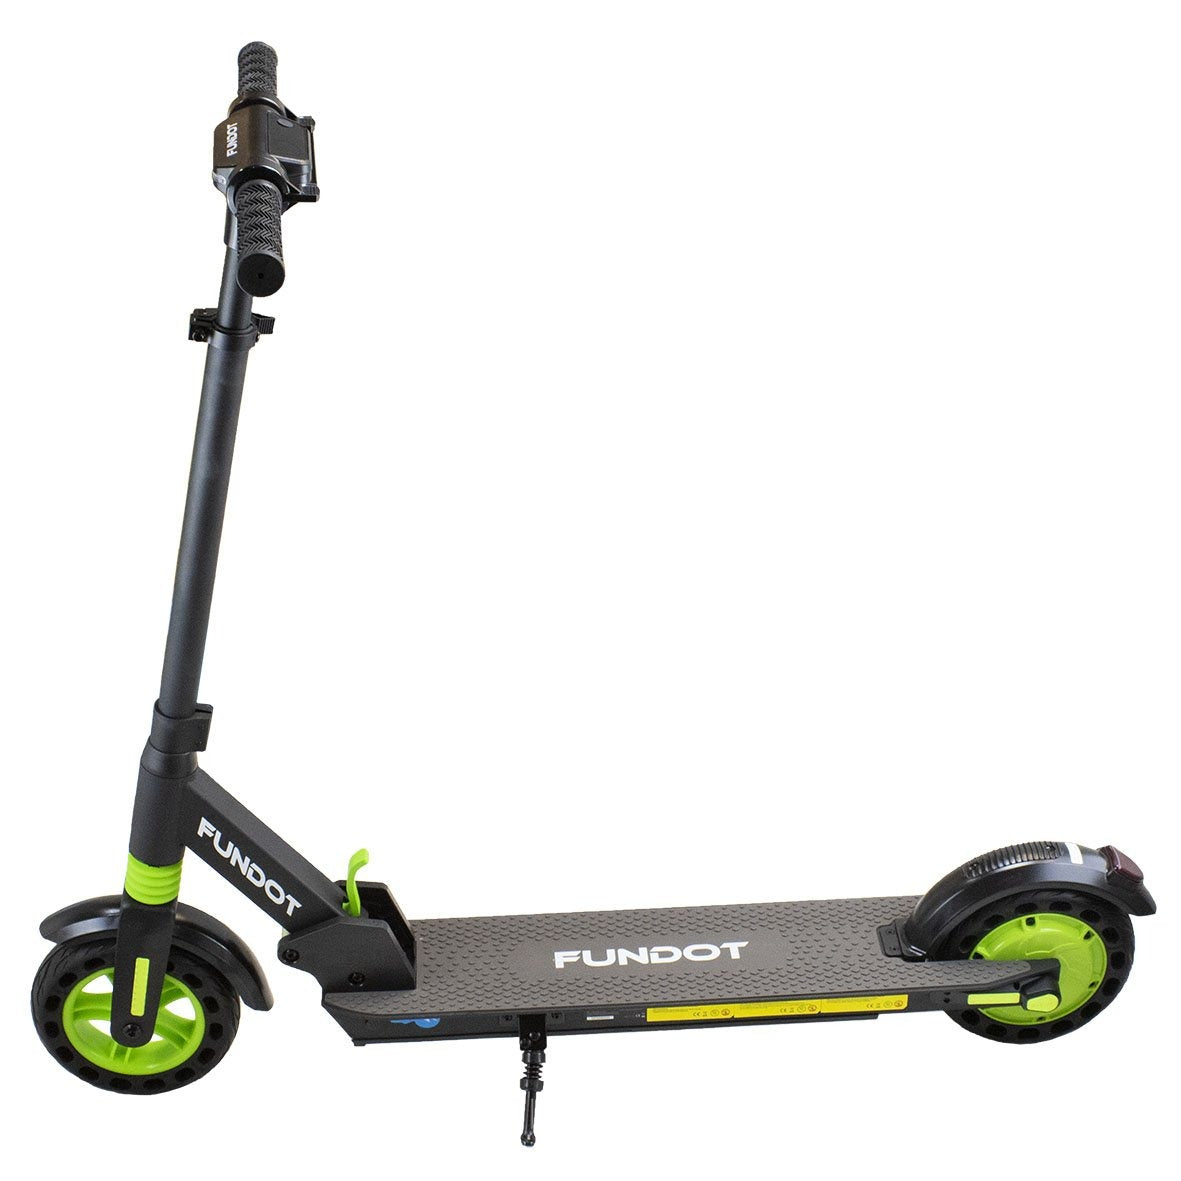 Electric Scooter for Kids FUNDOT for sale